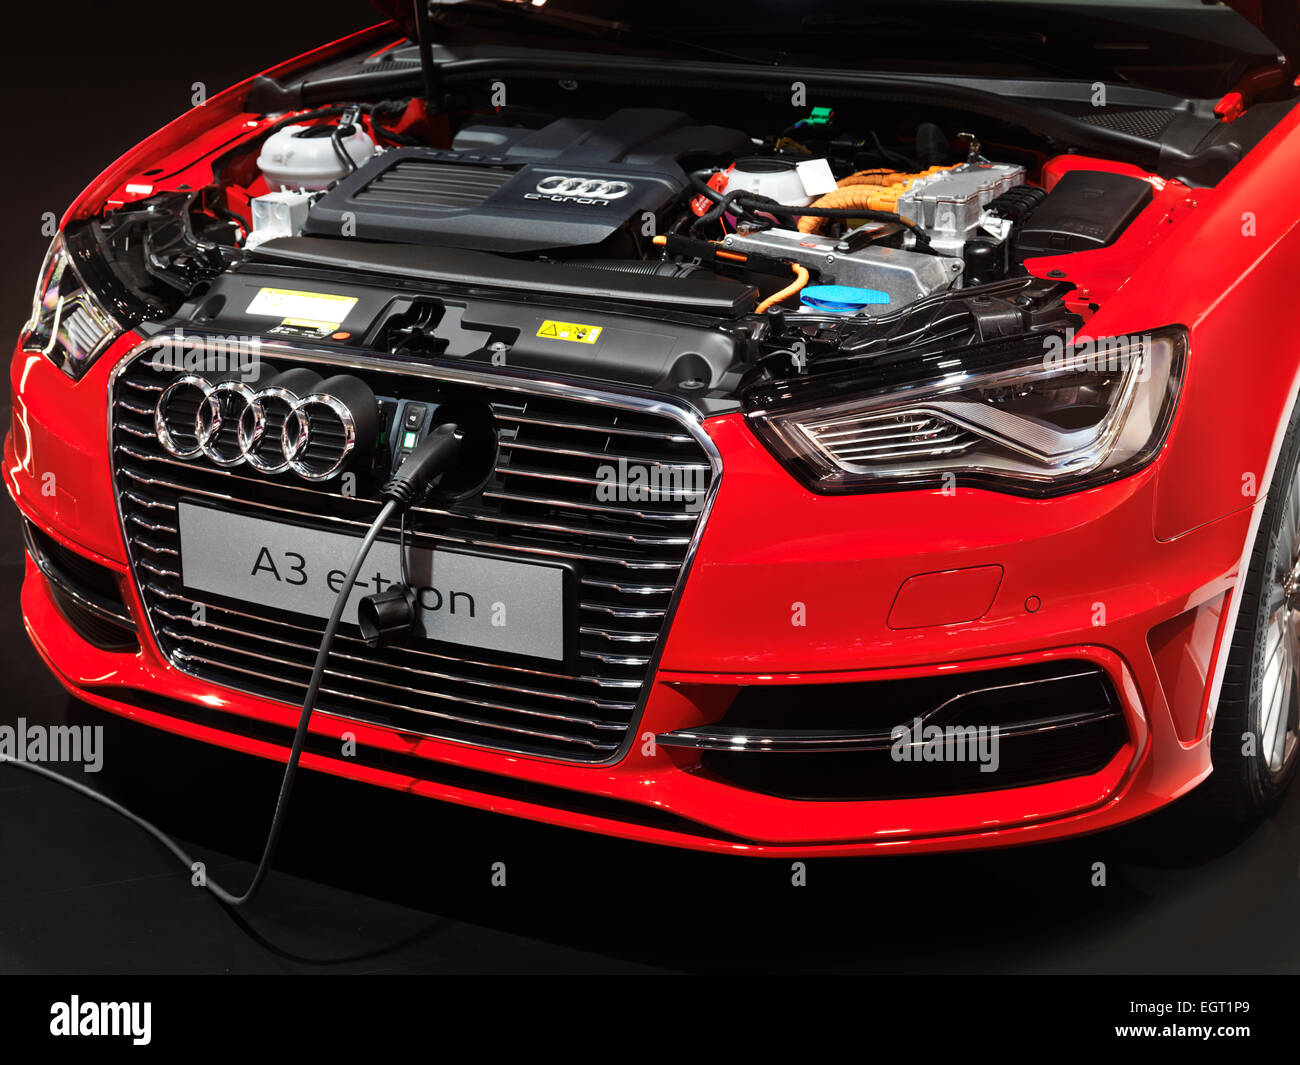 Closeup of Audi A3 e-tron electric car with a power plug being charged - Stock Image